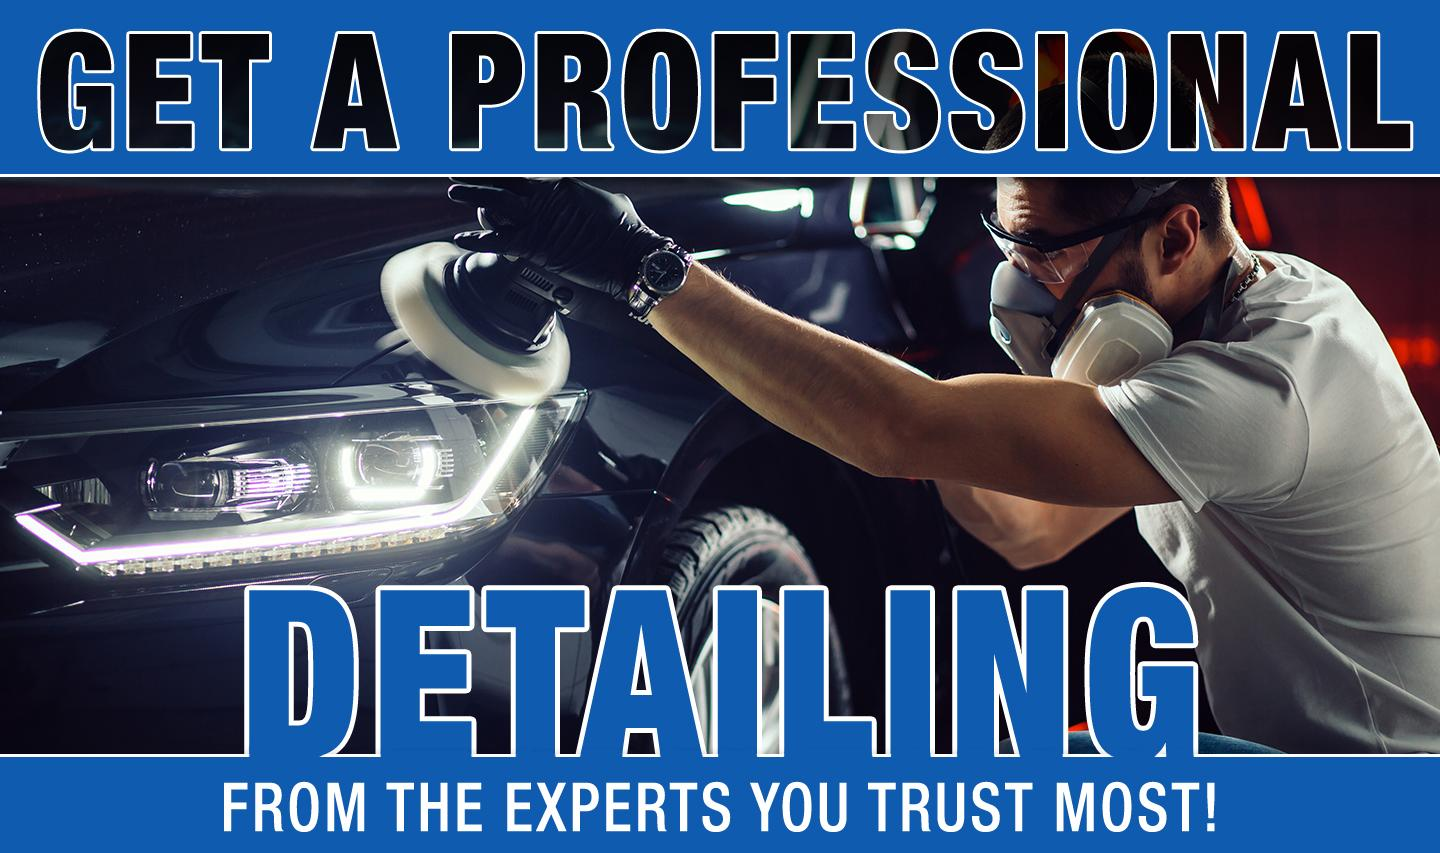 Get A Professional Detailing - From The Experts Your Trust Most!